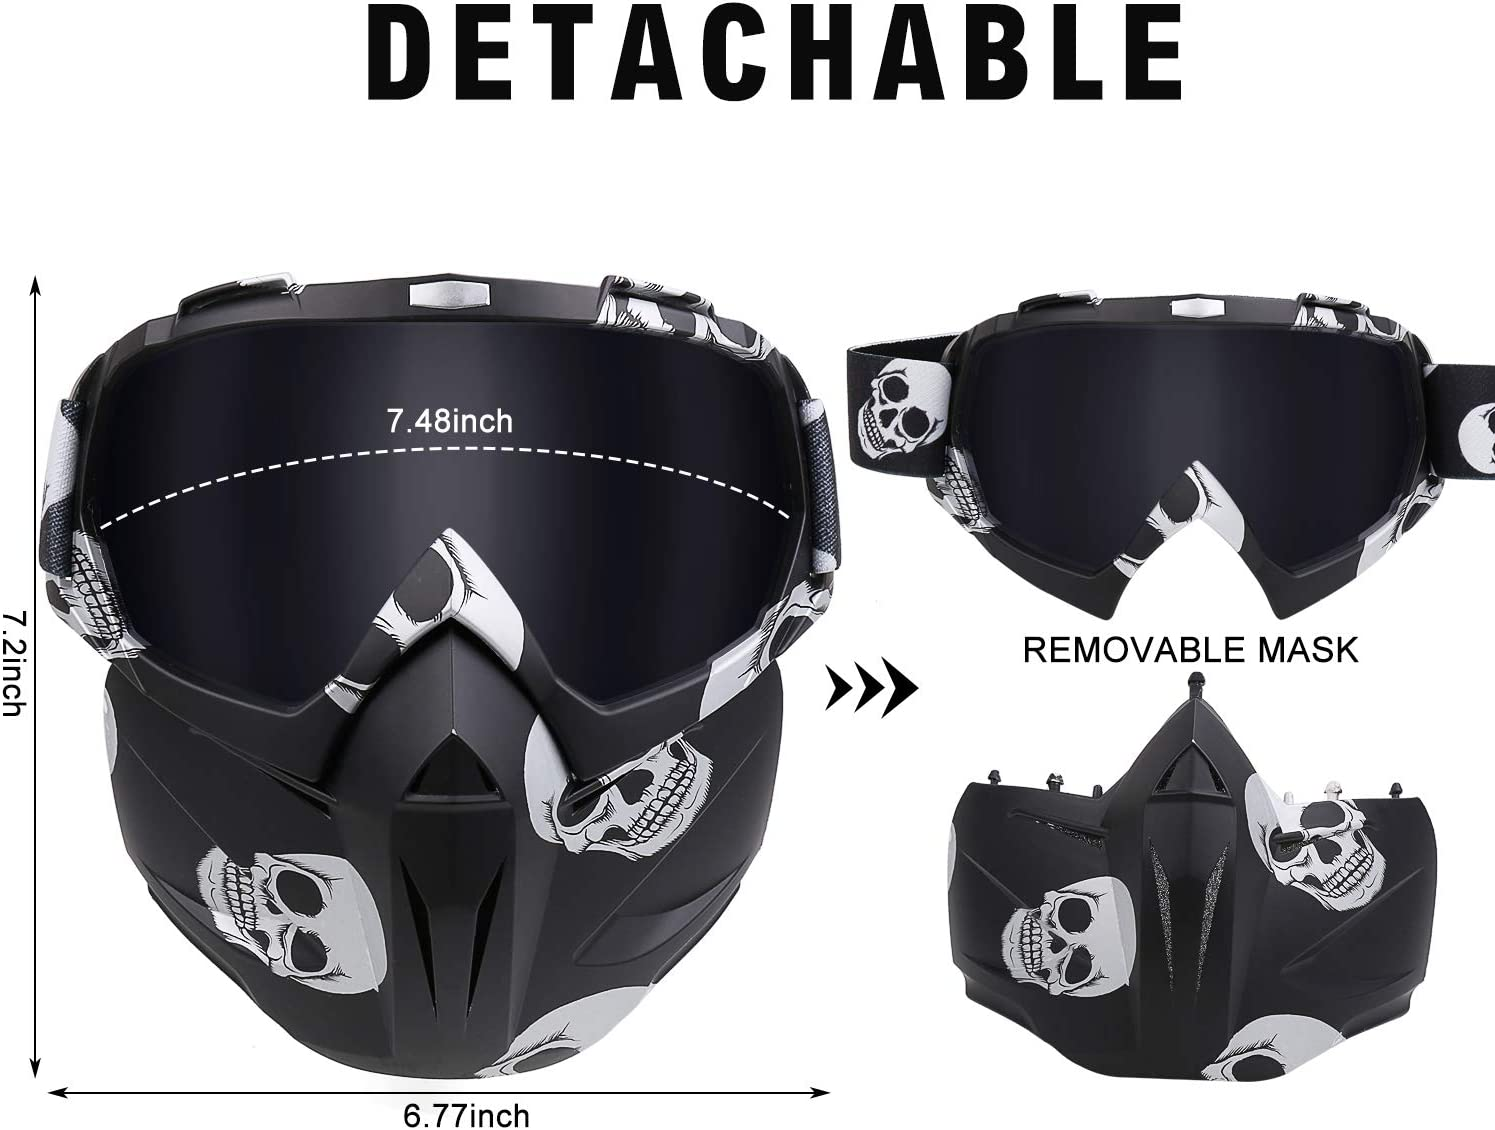 Ski Goggles ATV Racing Goggles Dirt Bike Mx Goggle Glasses,Detachable Full Face Mask Flantor Adult Motorcycle Goggles Motocross Windproof Face Mask